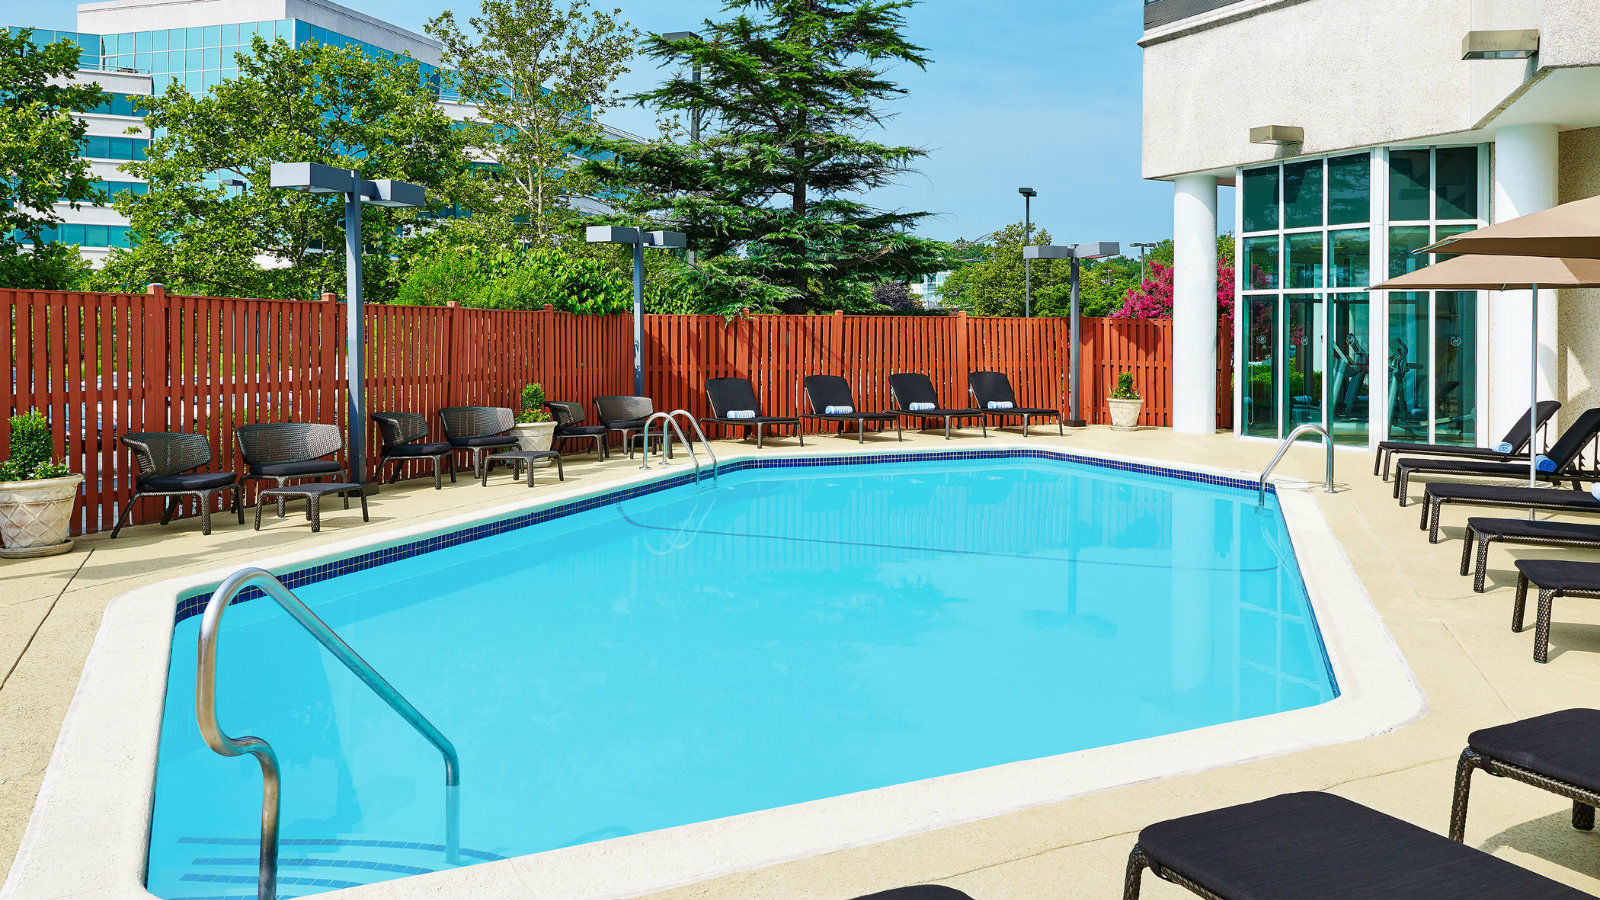 Hotel Features - Outdoor Pool